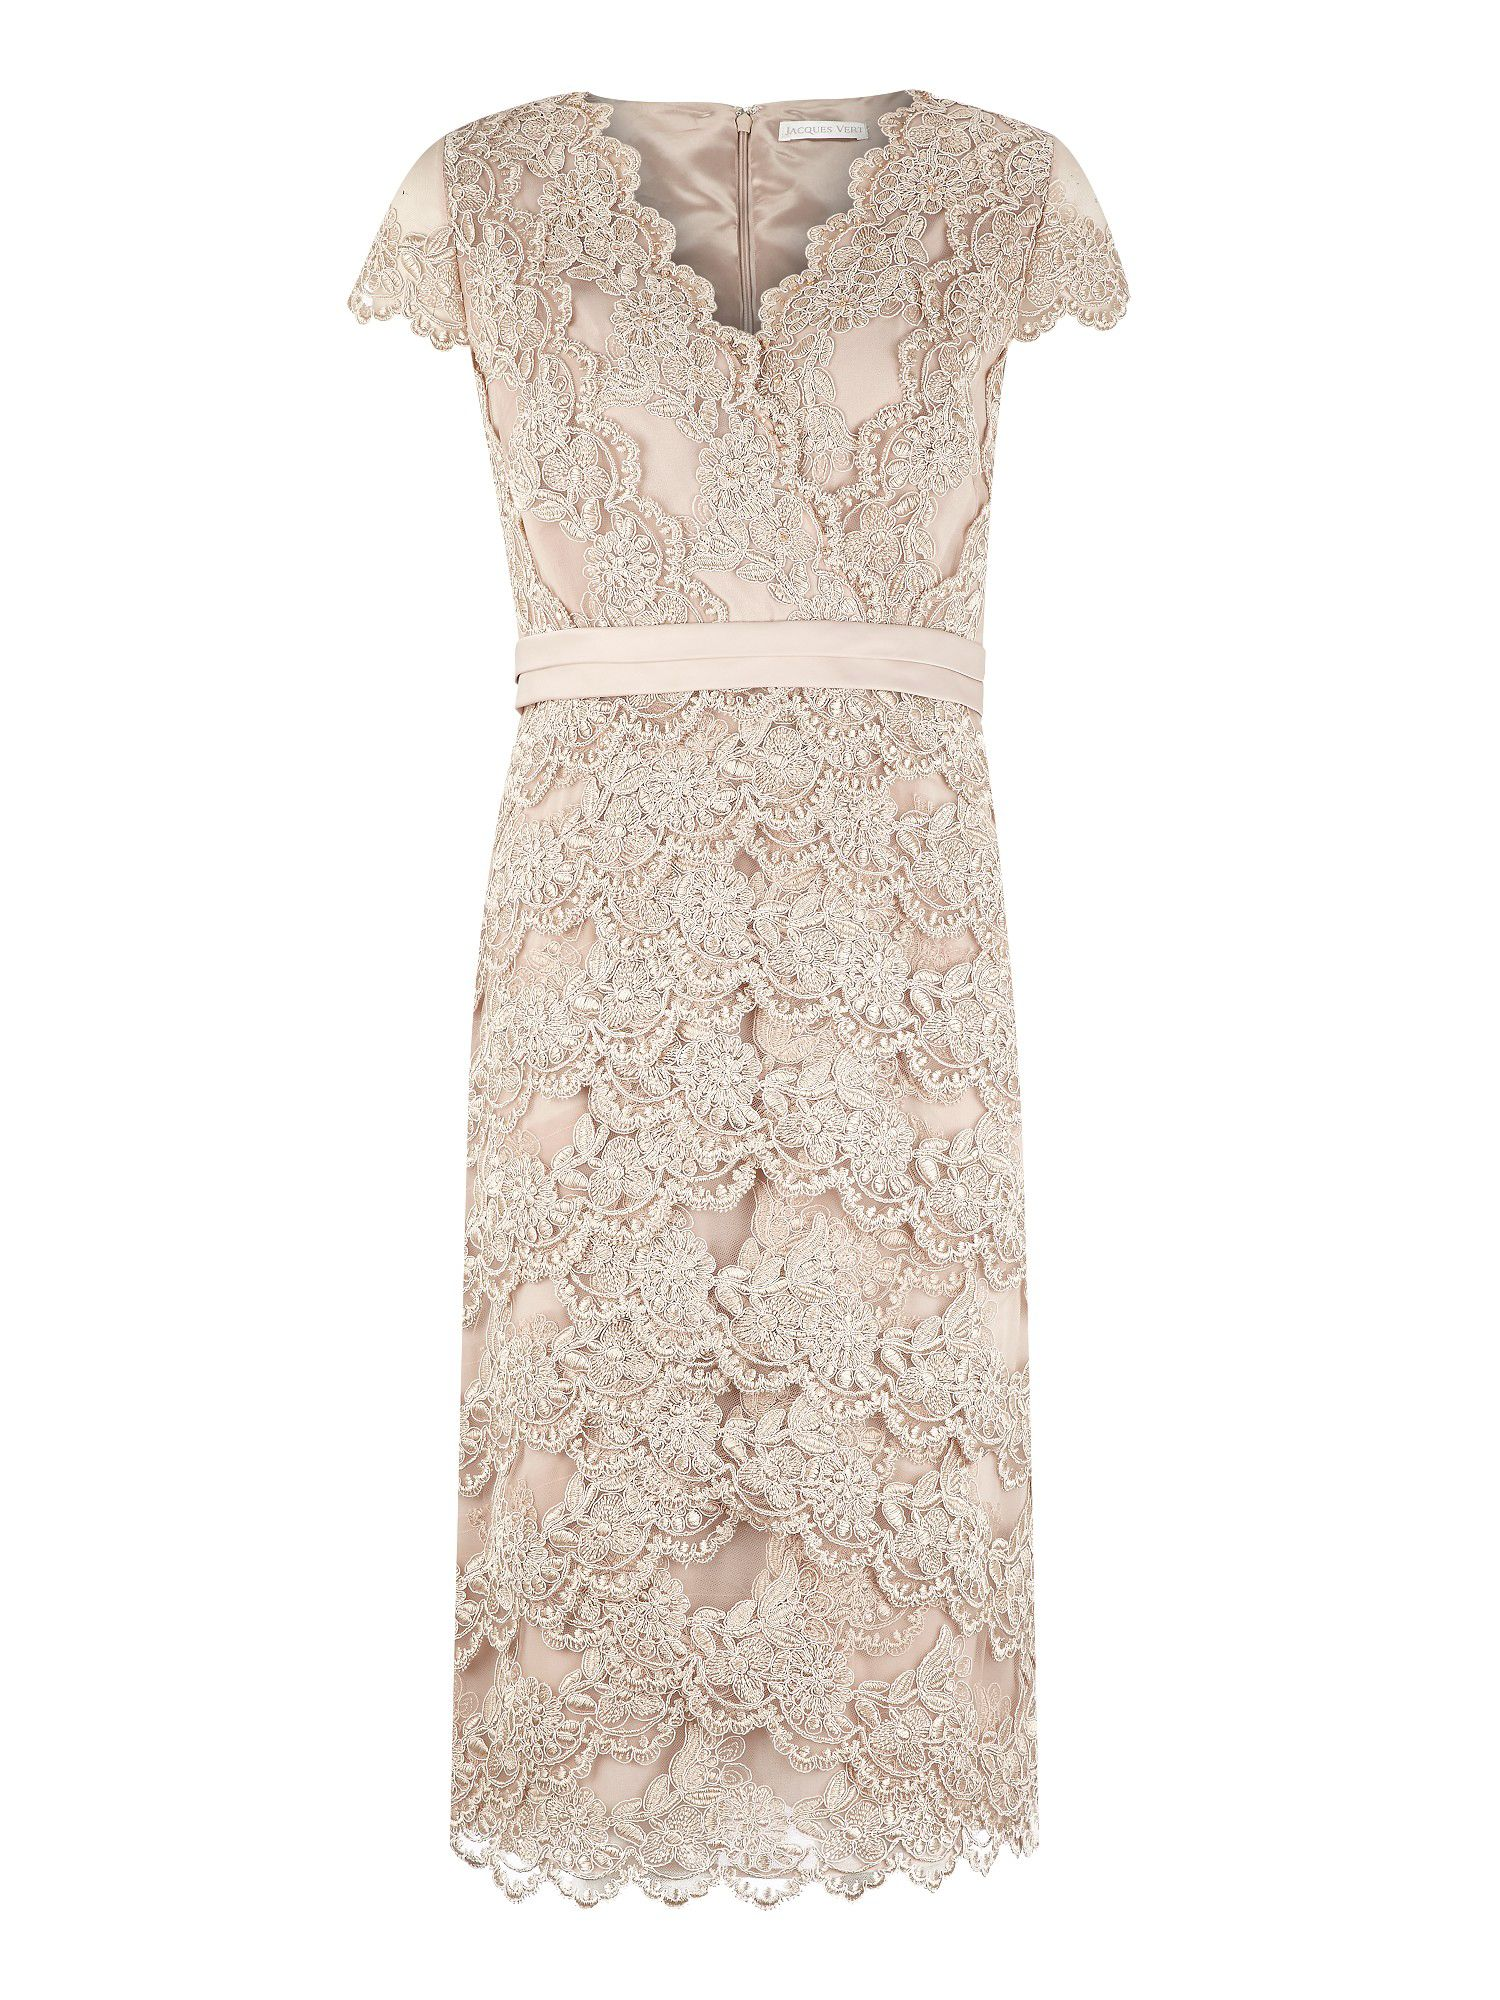 Champagne lace embellished dress